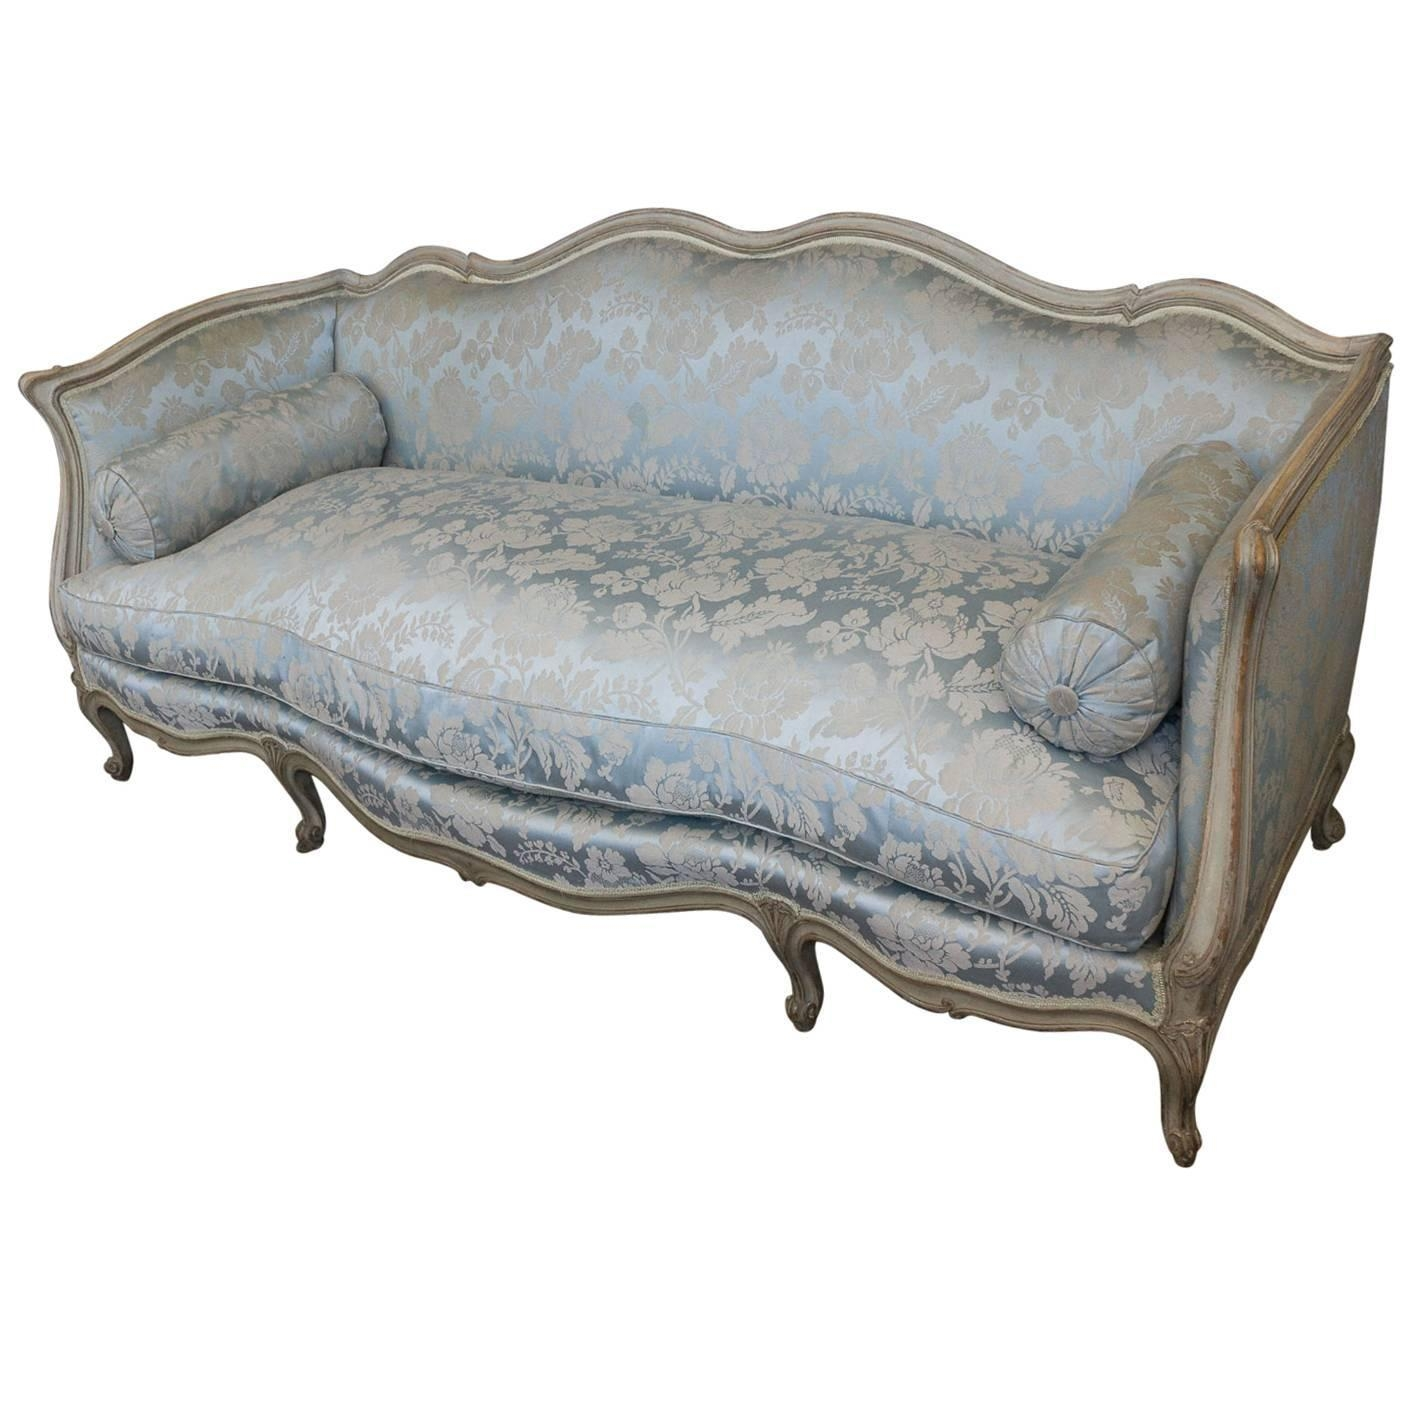 French Louis Xv Style Sofa For Sale At 1Stdibs With French Style Sofas (Image 4 of 20)